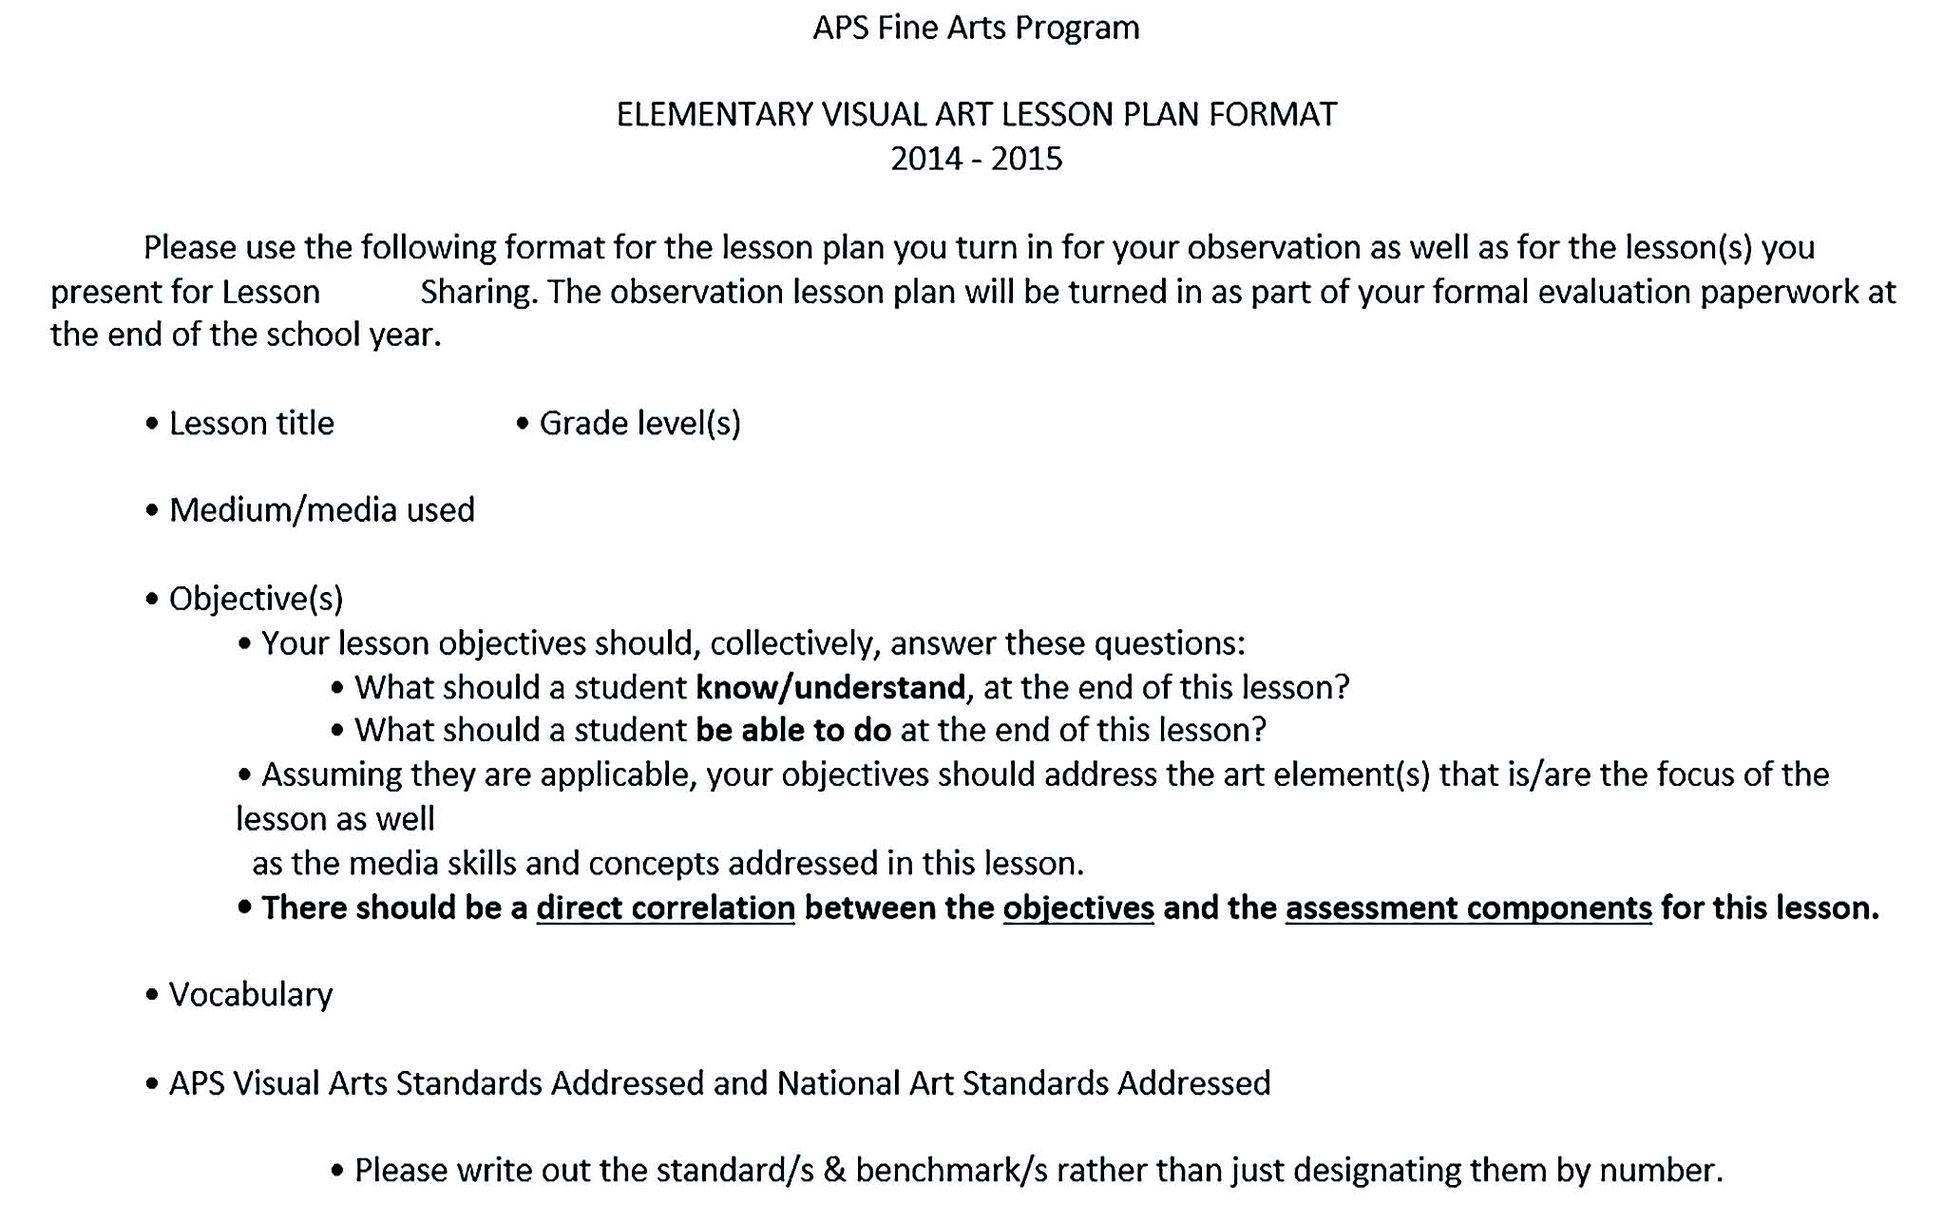 Elementary Visual Art Lesson Plan Free Word Download